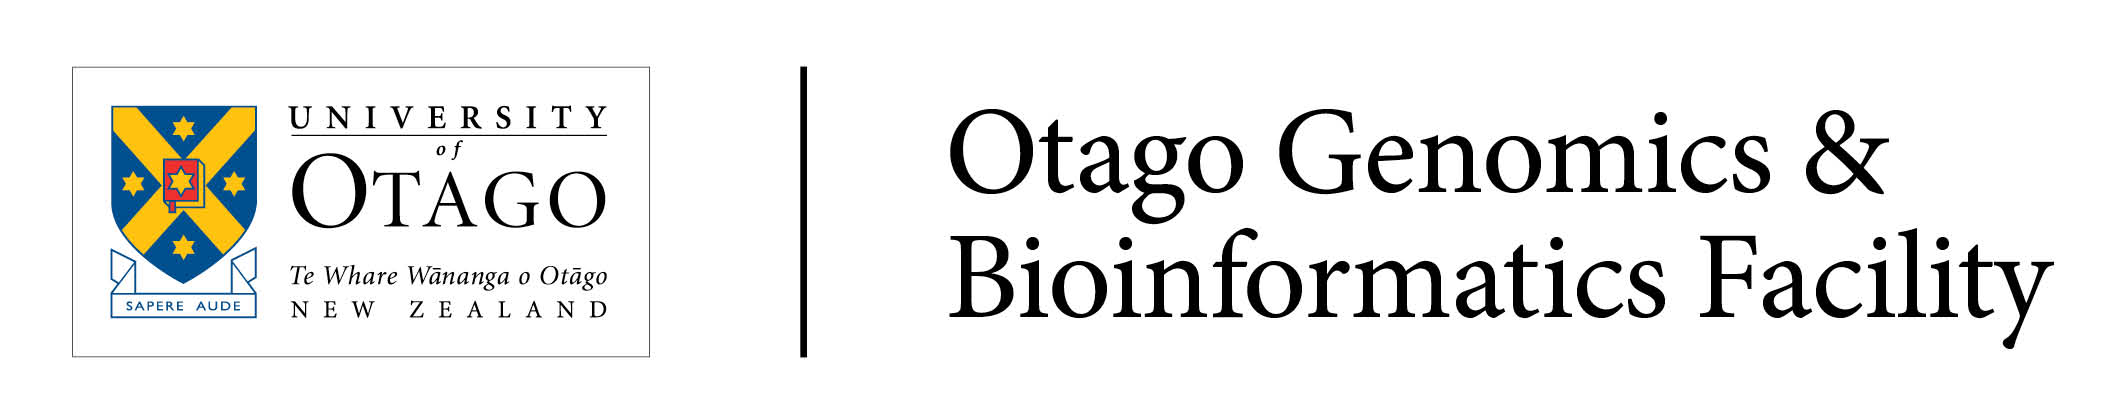 Otago Genomics & Bioinformatics Facility, University of Otago